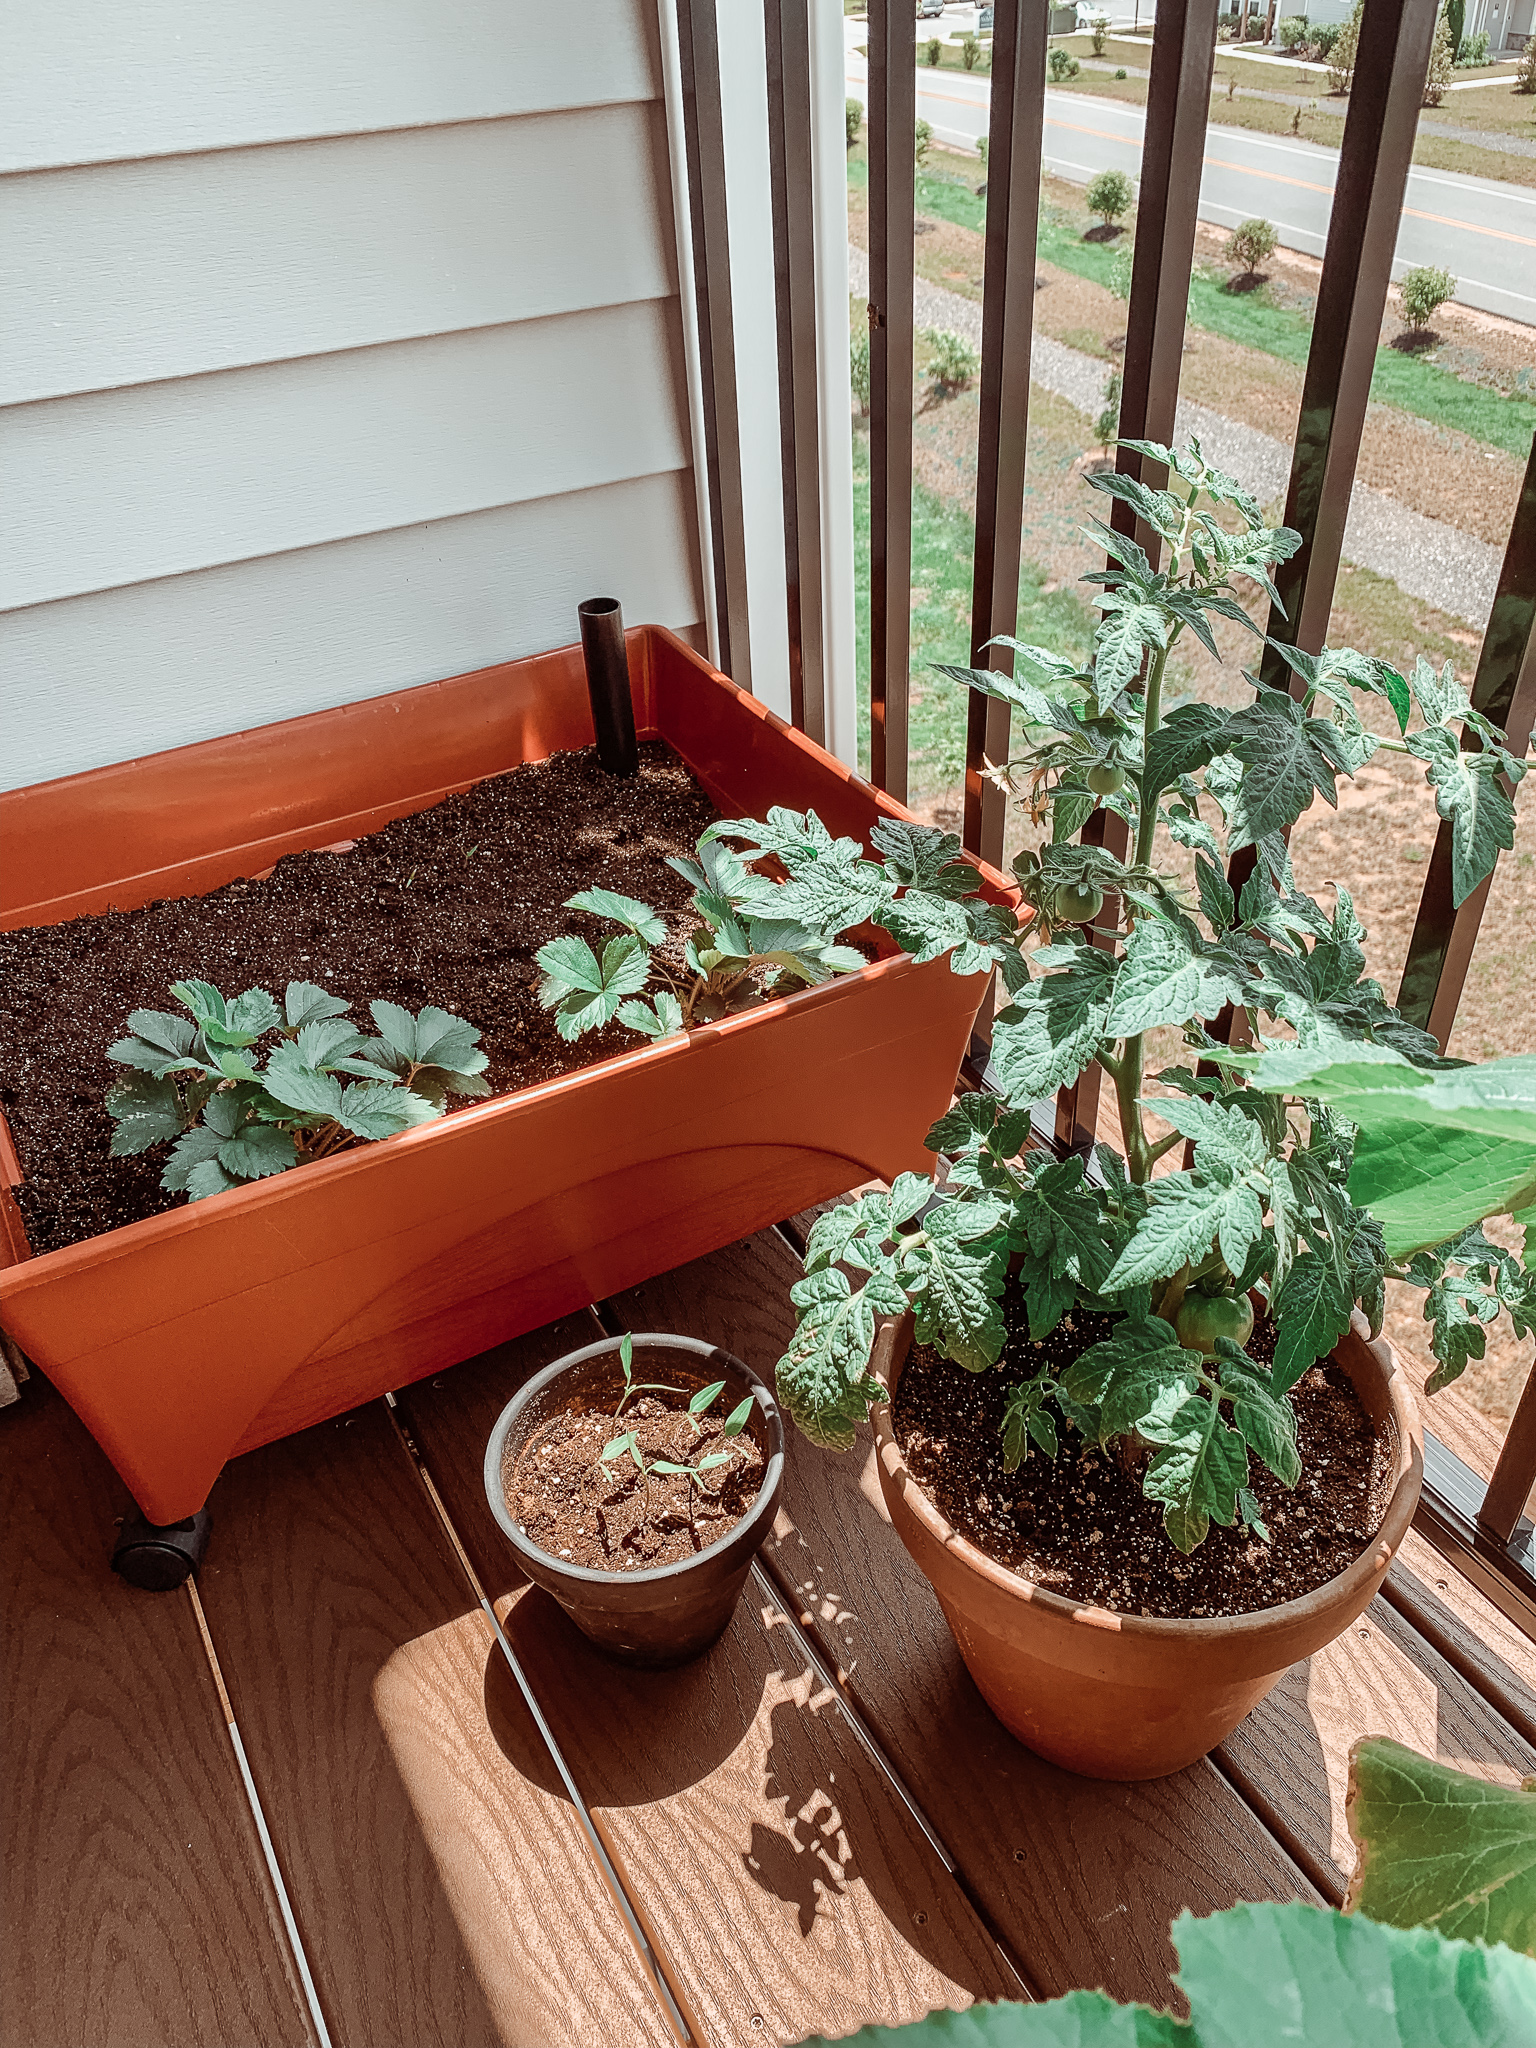 How to Grow a Fruit + Vegetable Garden from Your Balcony